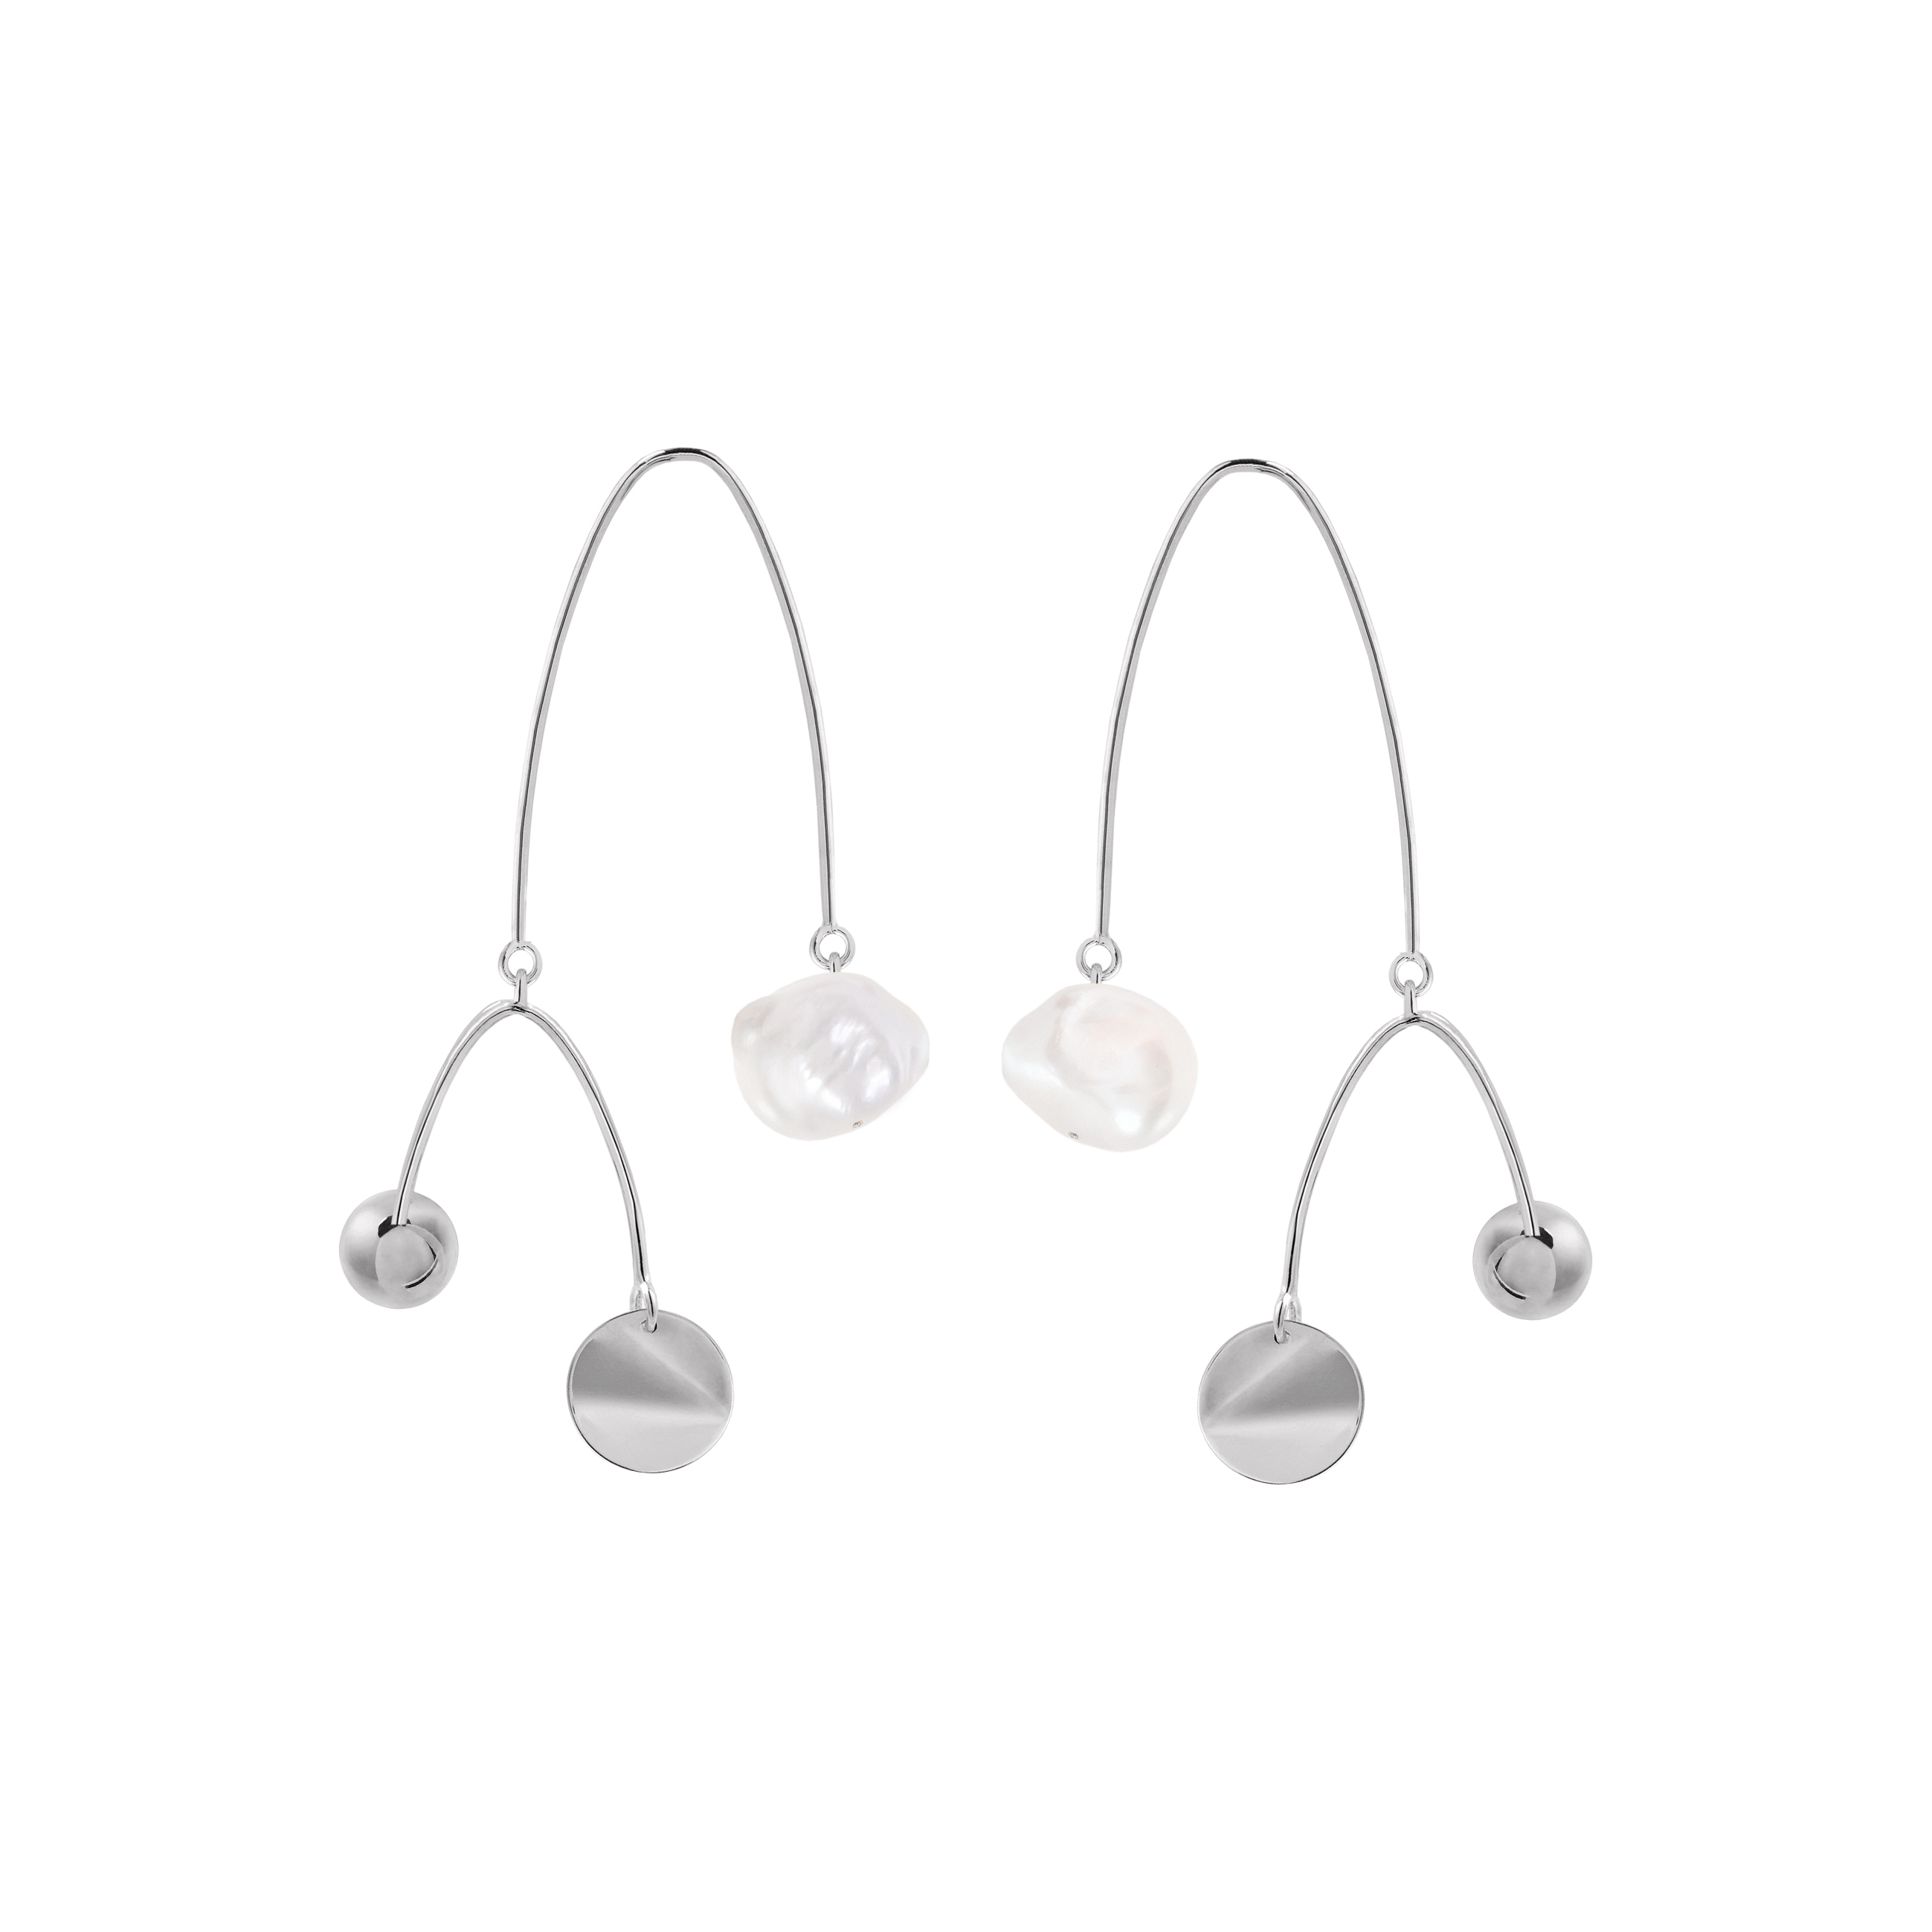 MOBILE EARRINGS 1/ SILVER